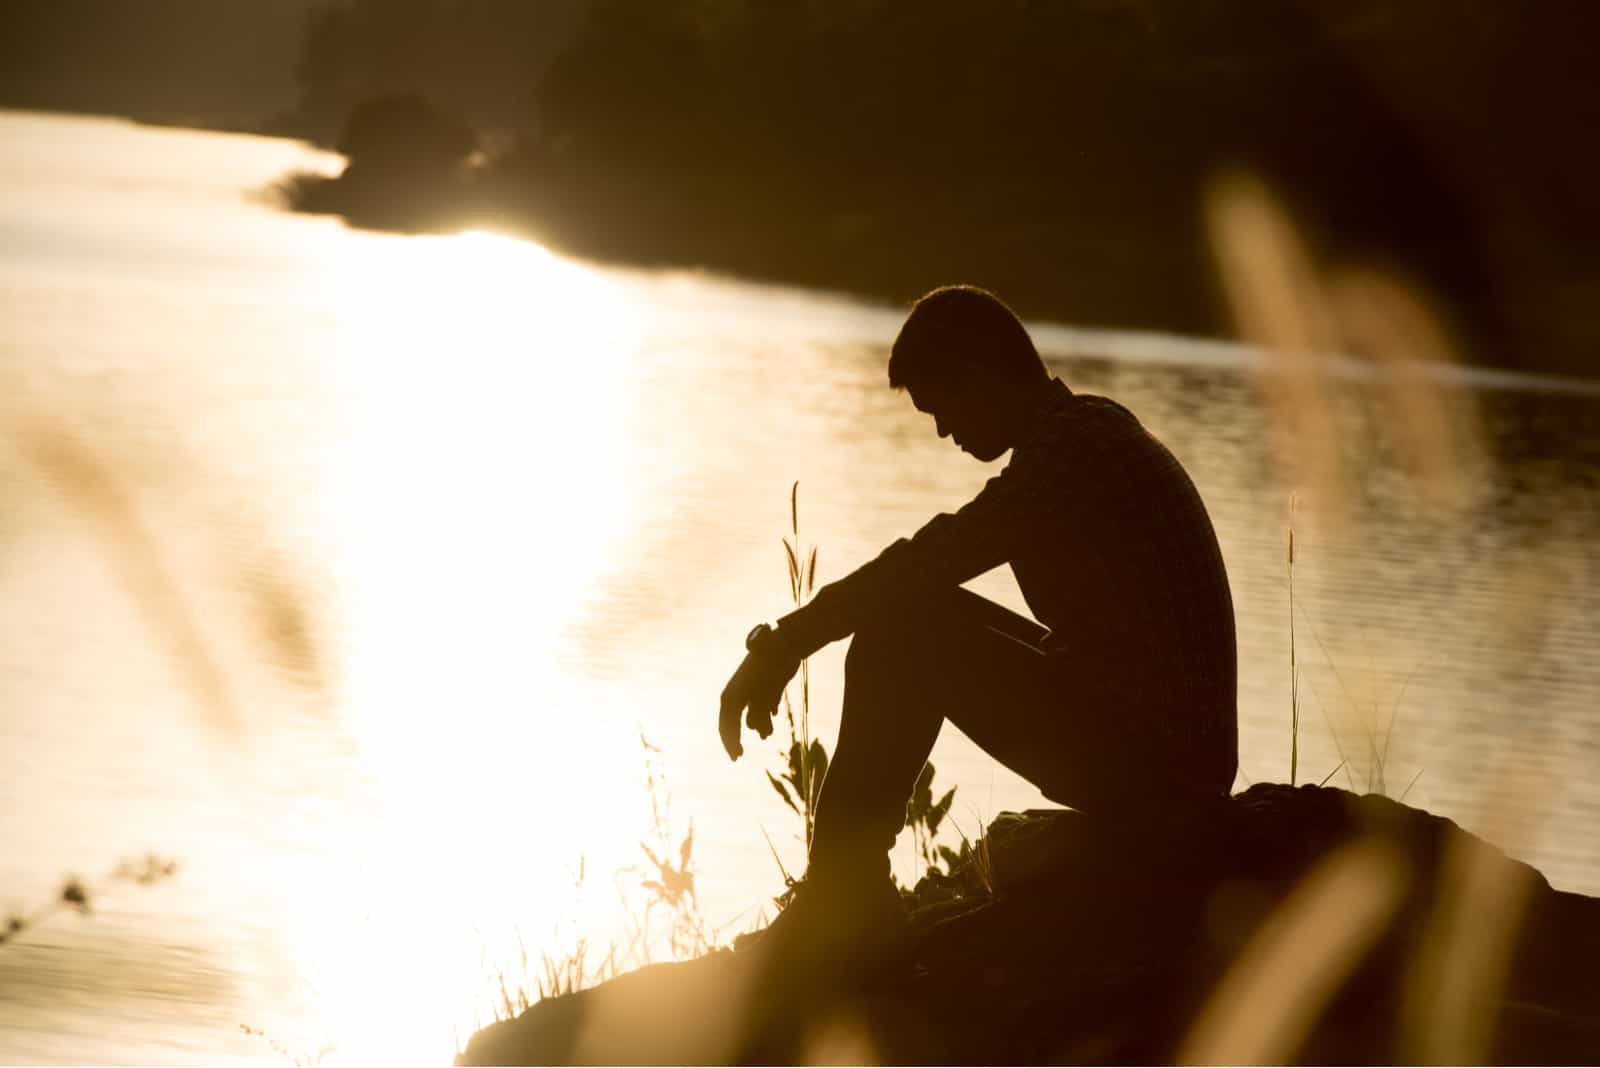 Sad young man at sunset by the river